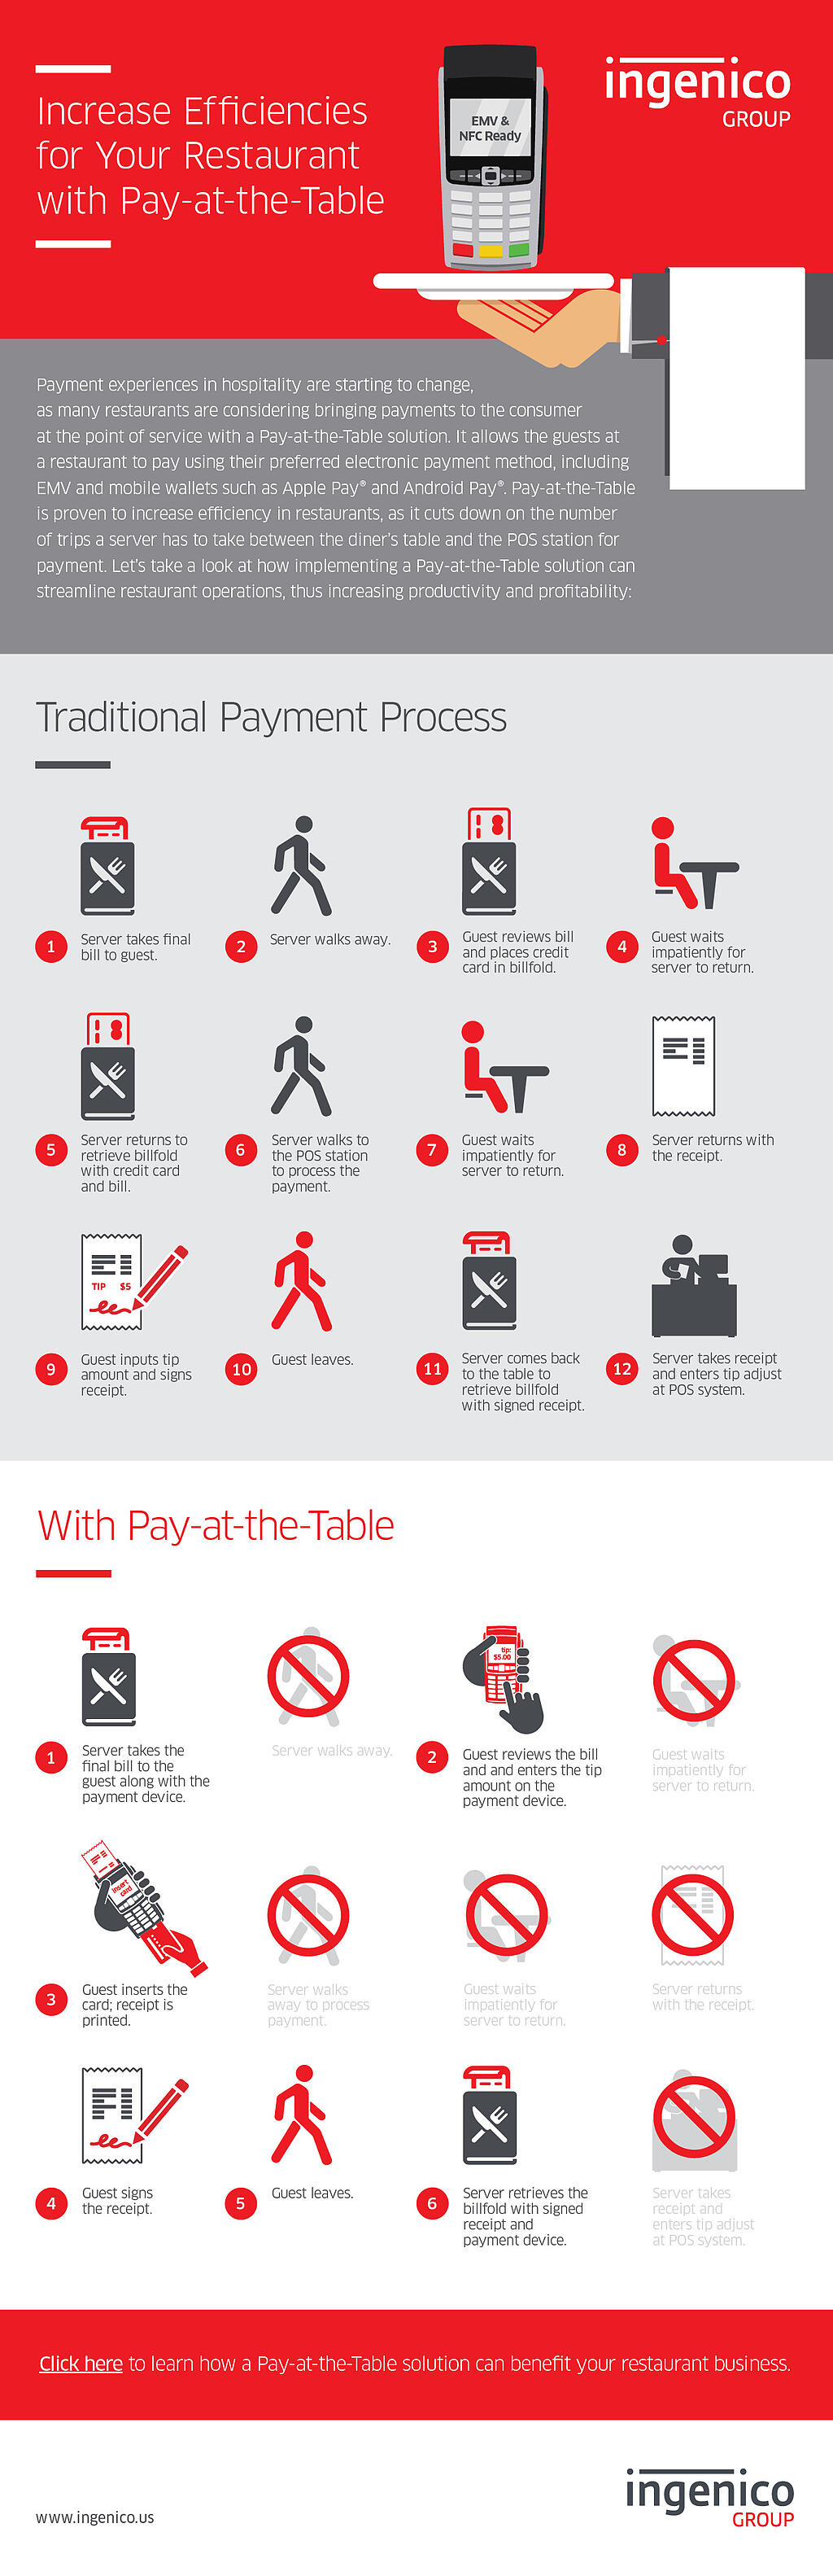 Pay-at-the-Table_Infographic_Image.jpg